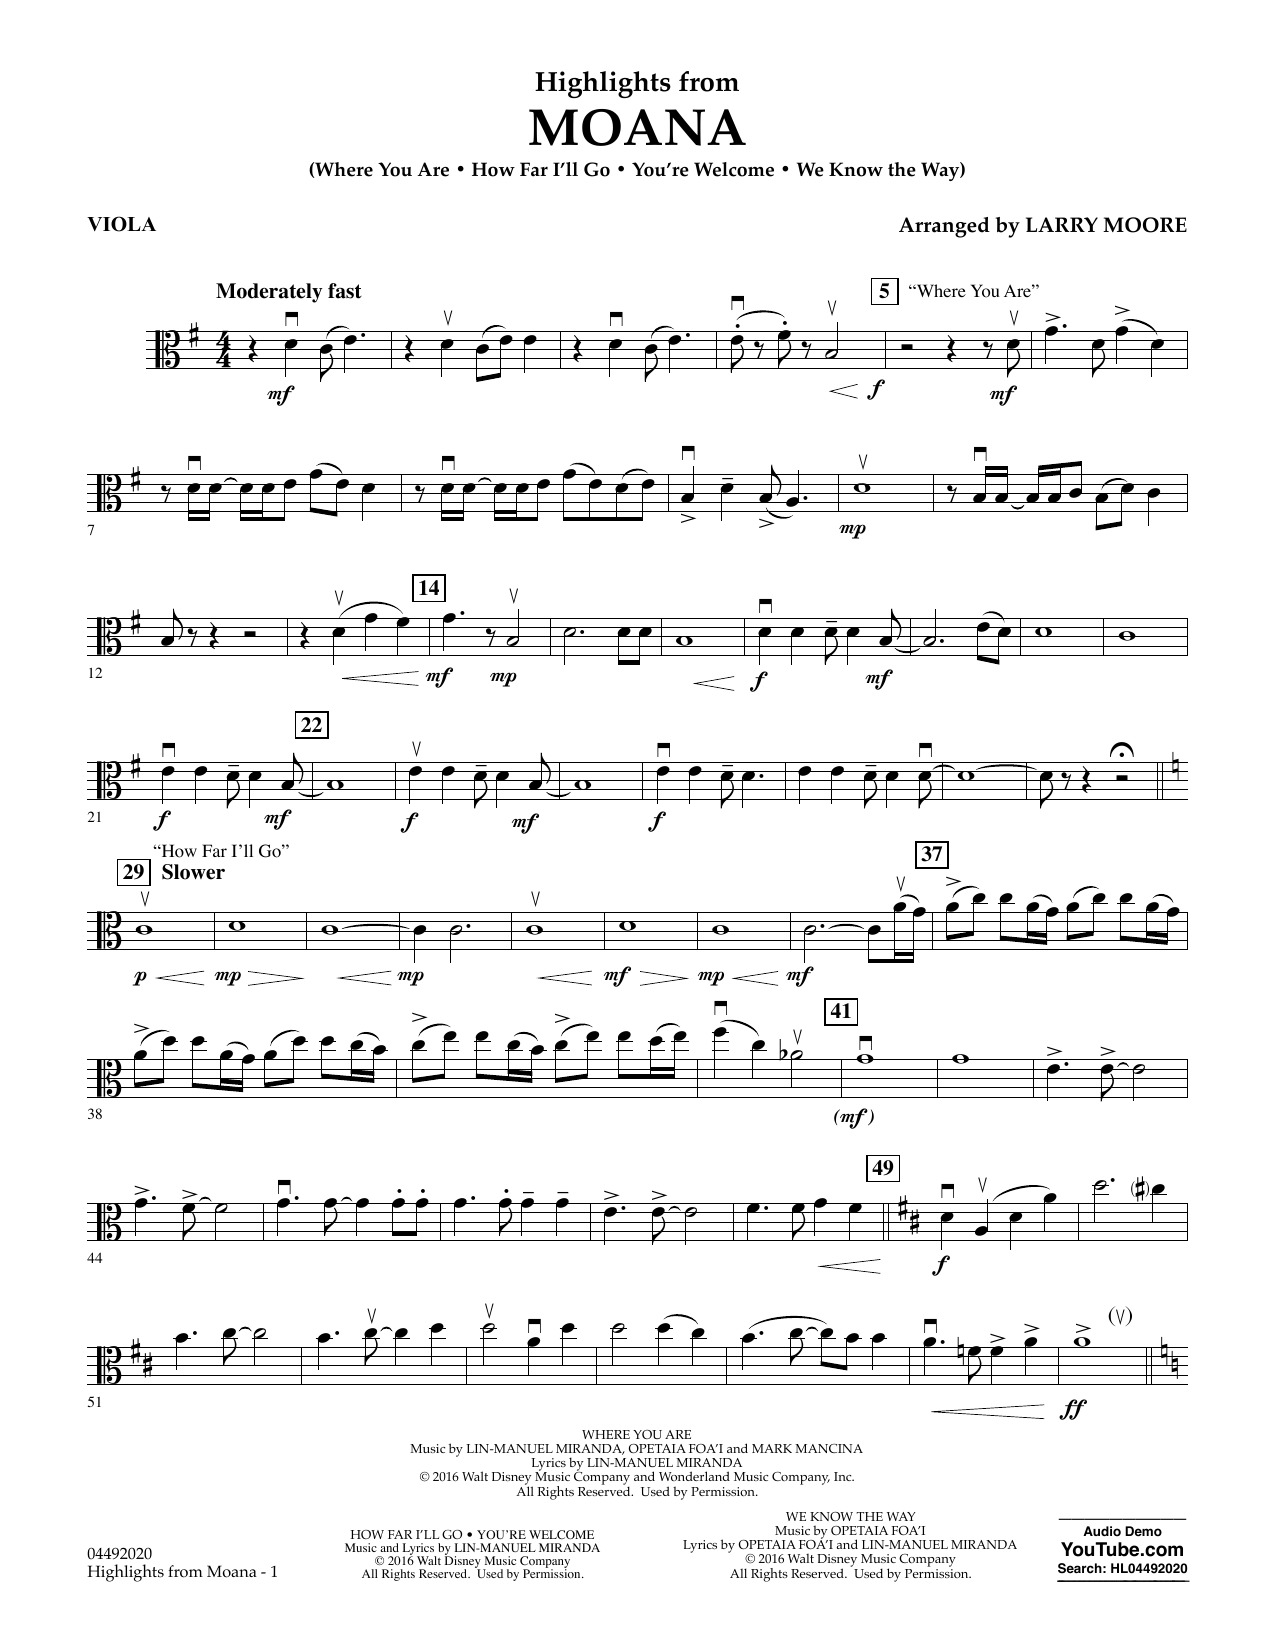 Larry Moore Highlights from Moana - Viola sheet music notes and chords. Download Printable PDF.